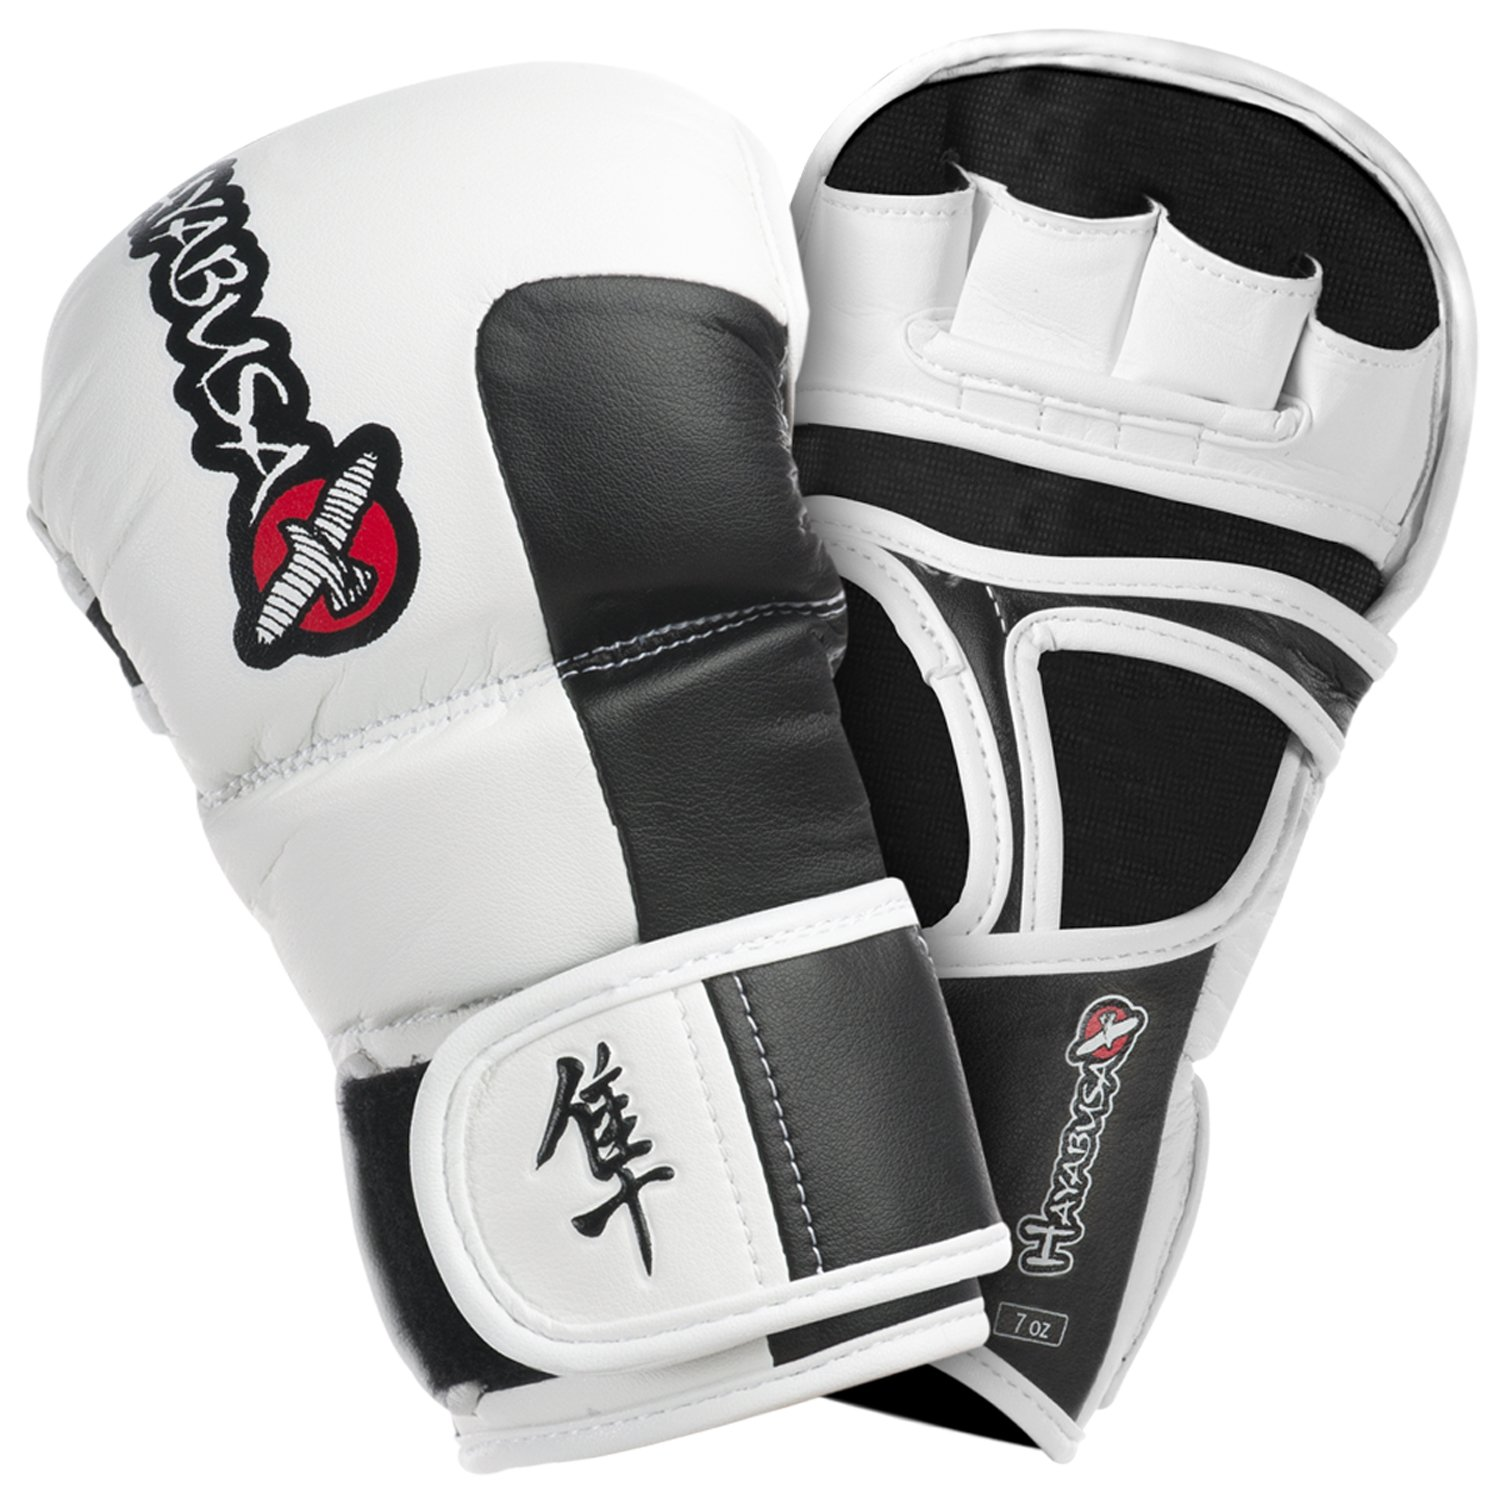 Hayabusa Tokushu Hybrid Gloves, Midnight Black, X-Large/7-Ounce T7HYG-BX